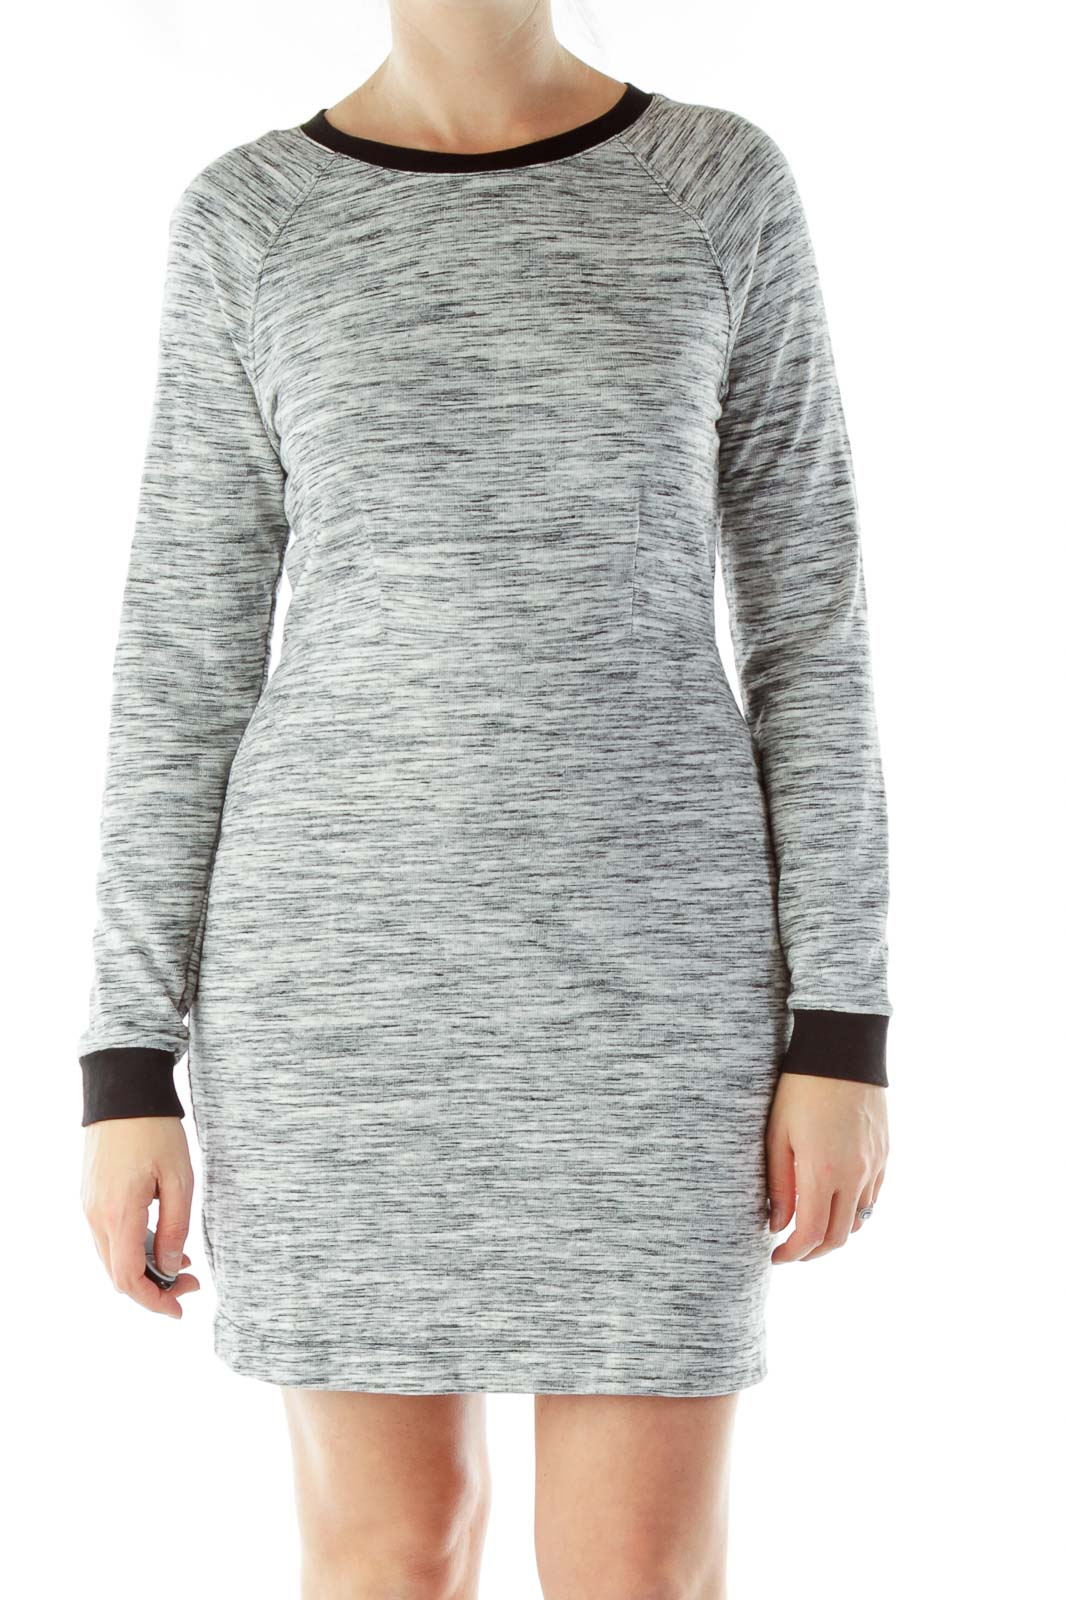 Gray Mottled Knit Dress